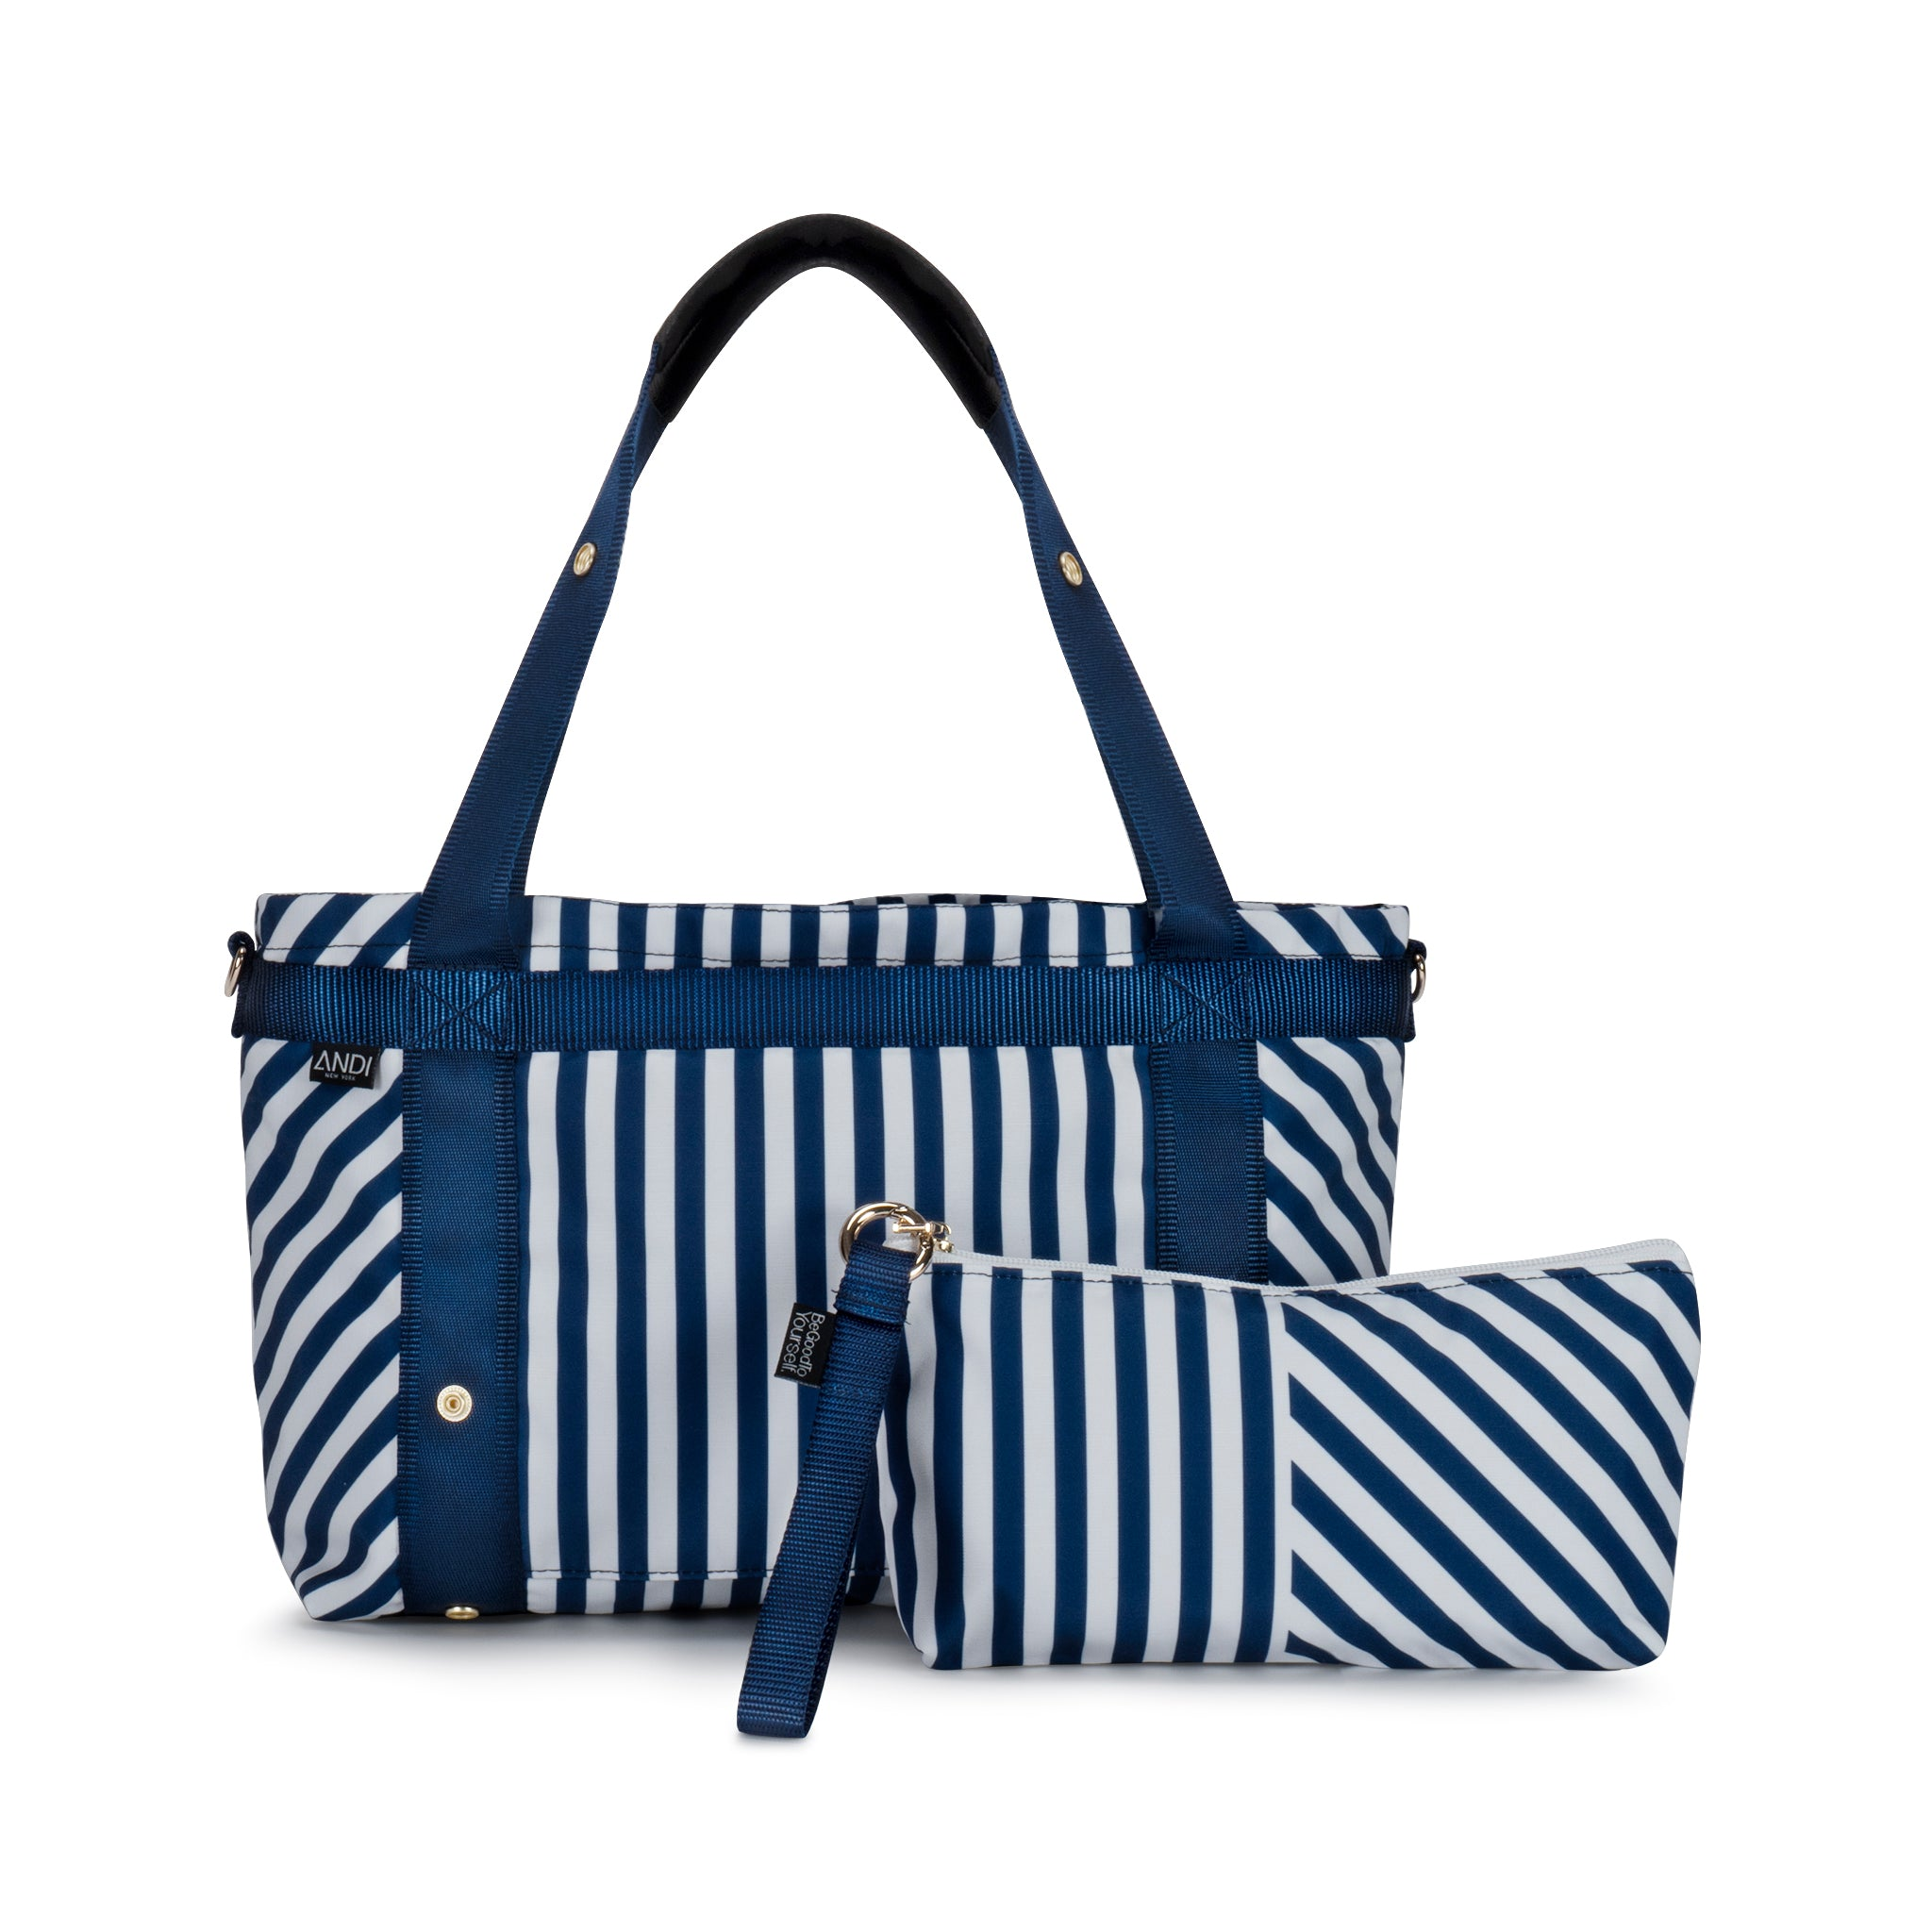 The ANDI Small - Summer Stripe